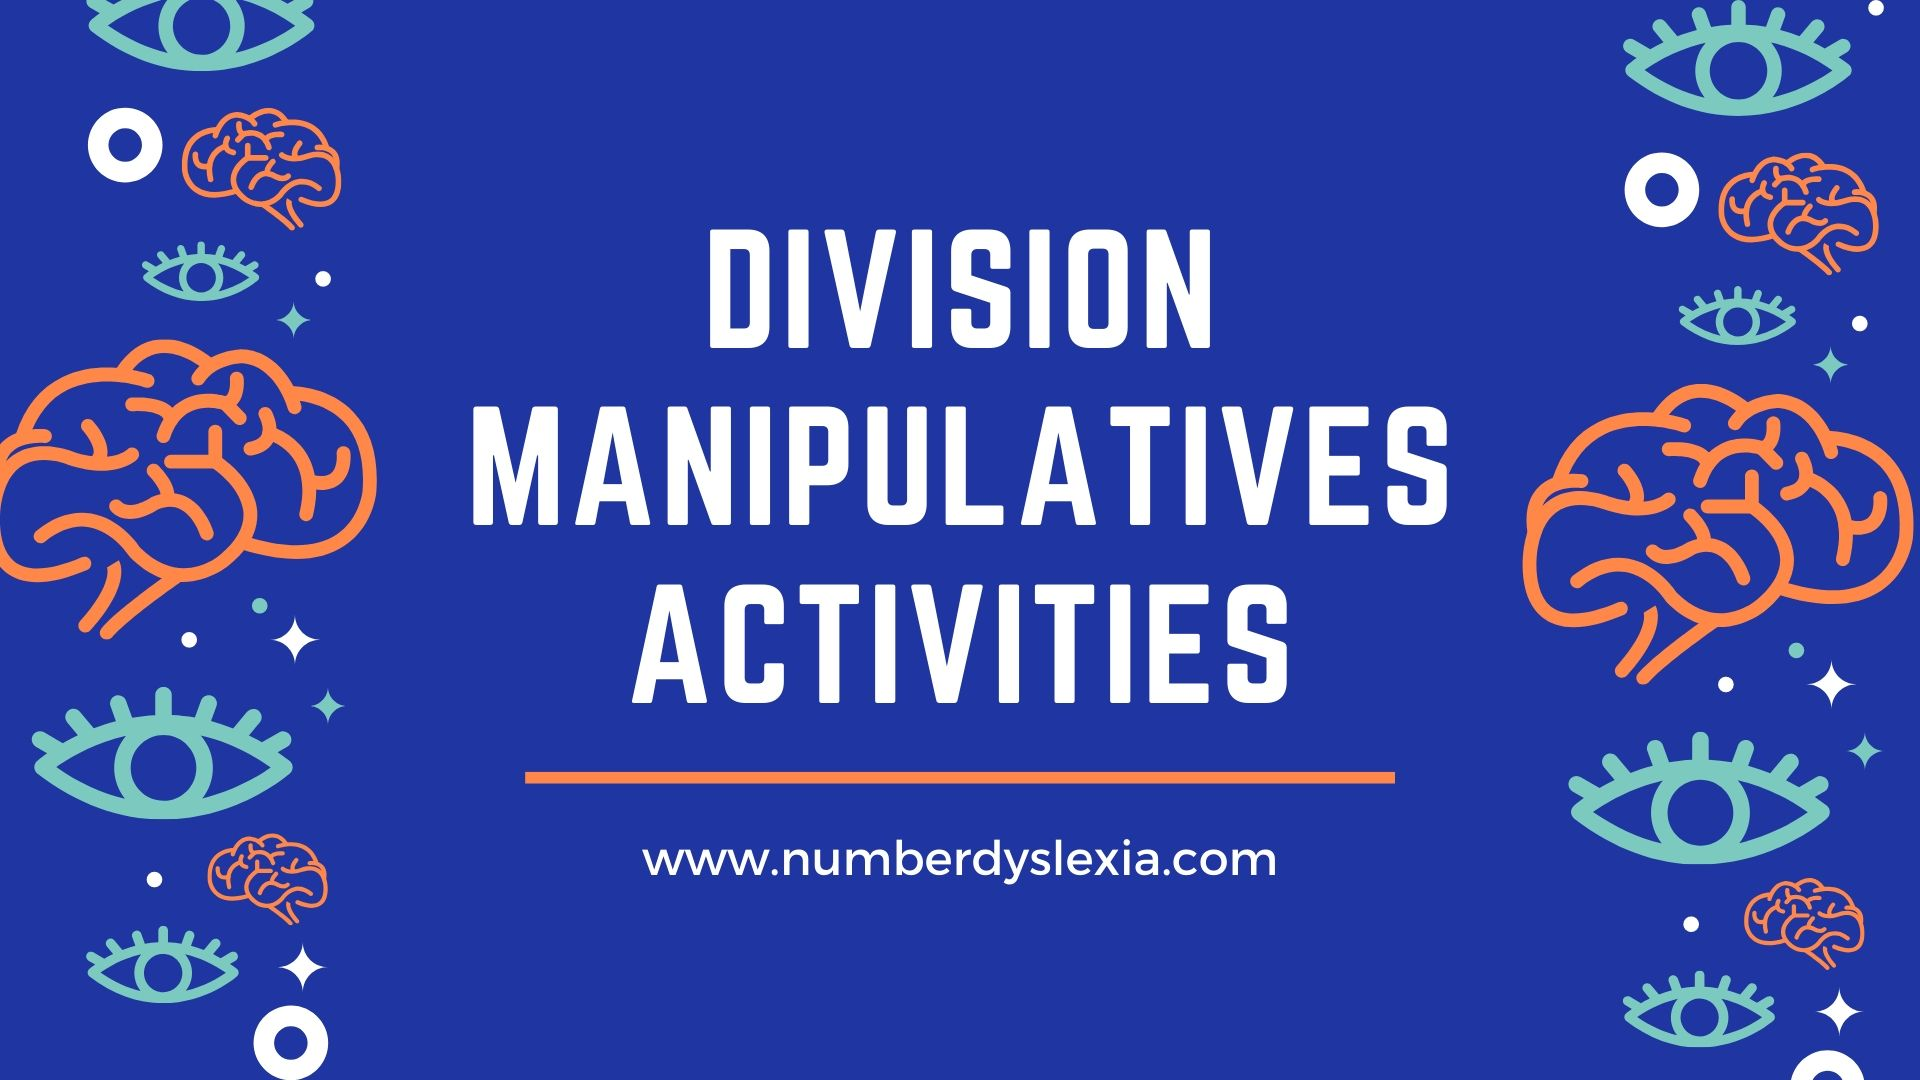 list of 5 division manipulative activities